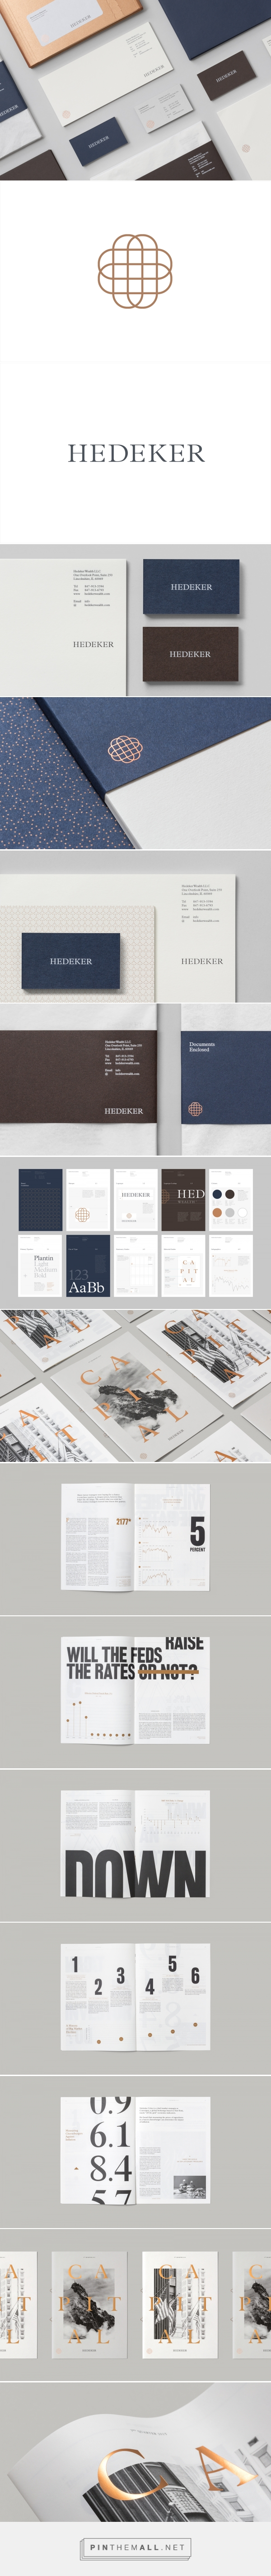 New Brand Identity for Hedeker by Socio Design — BP&O created via